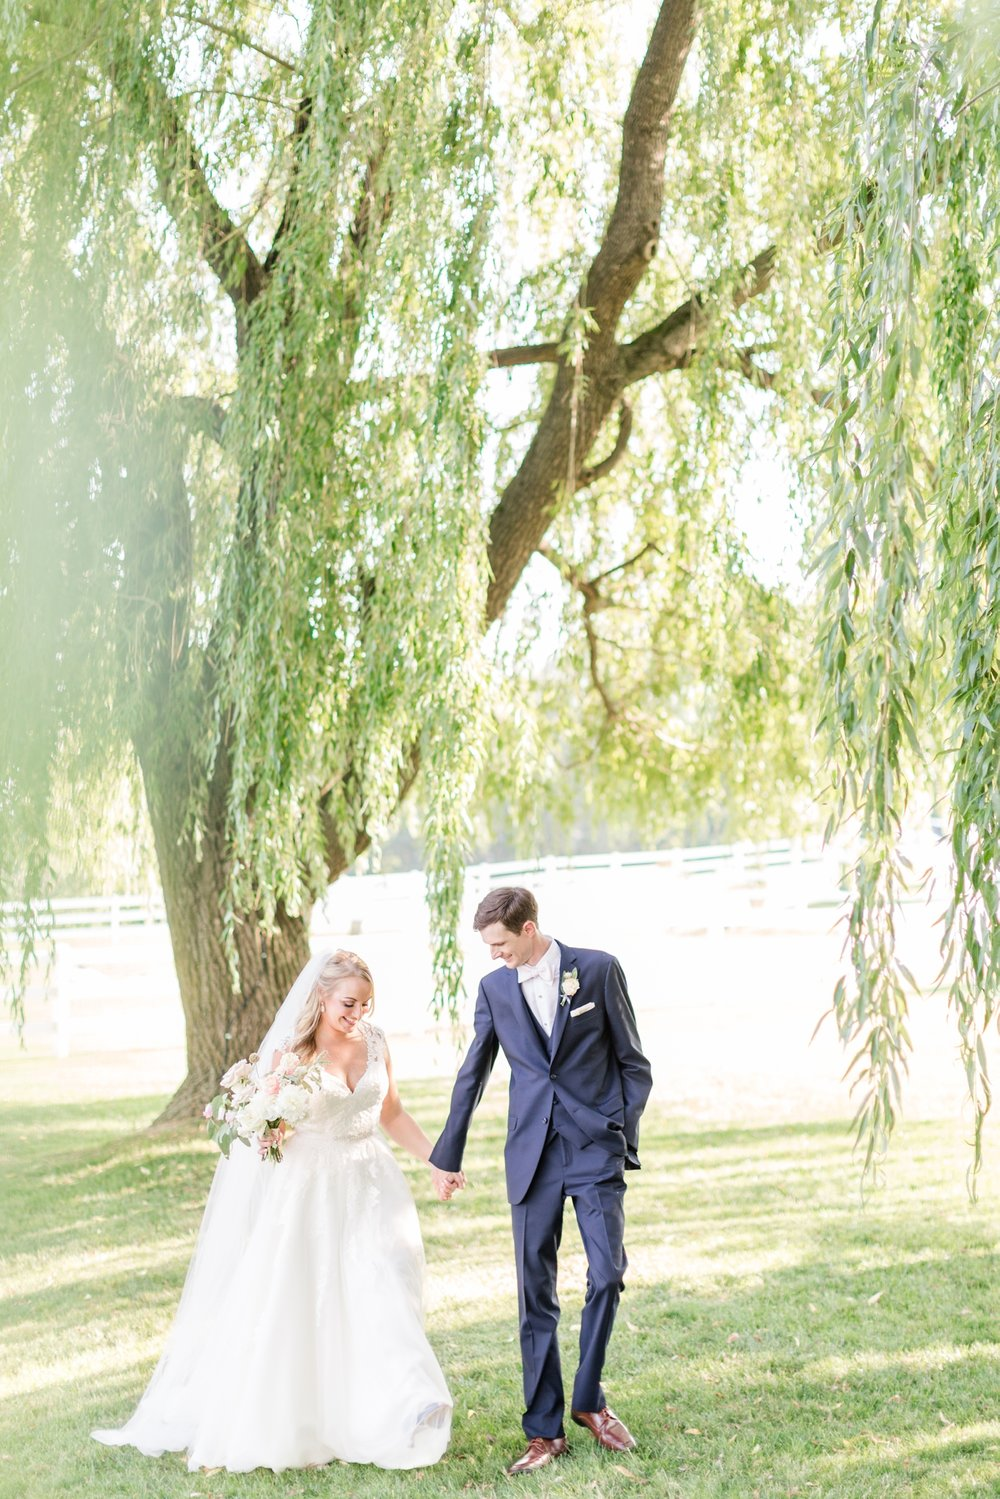 I can't get enough of these willow trees!